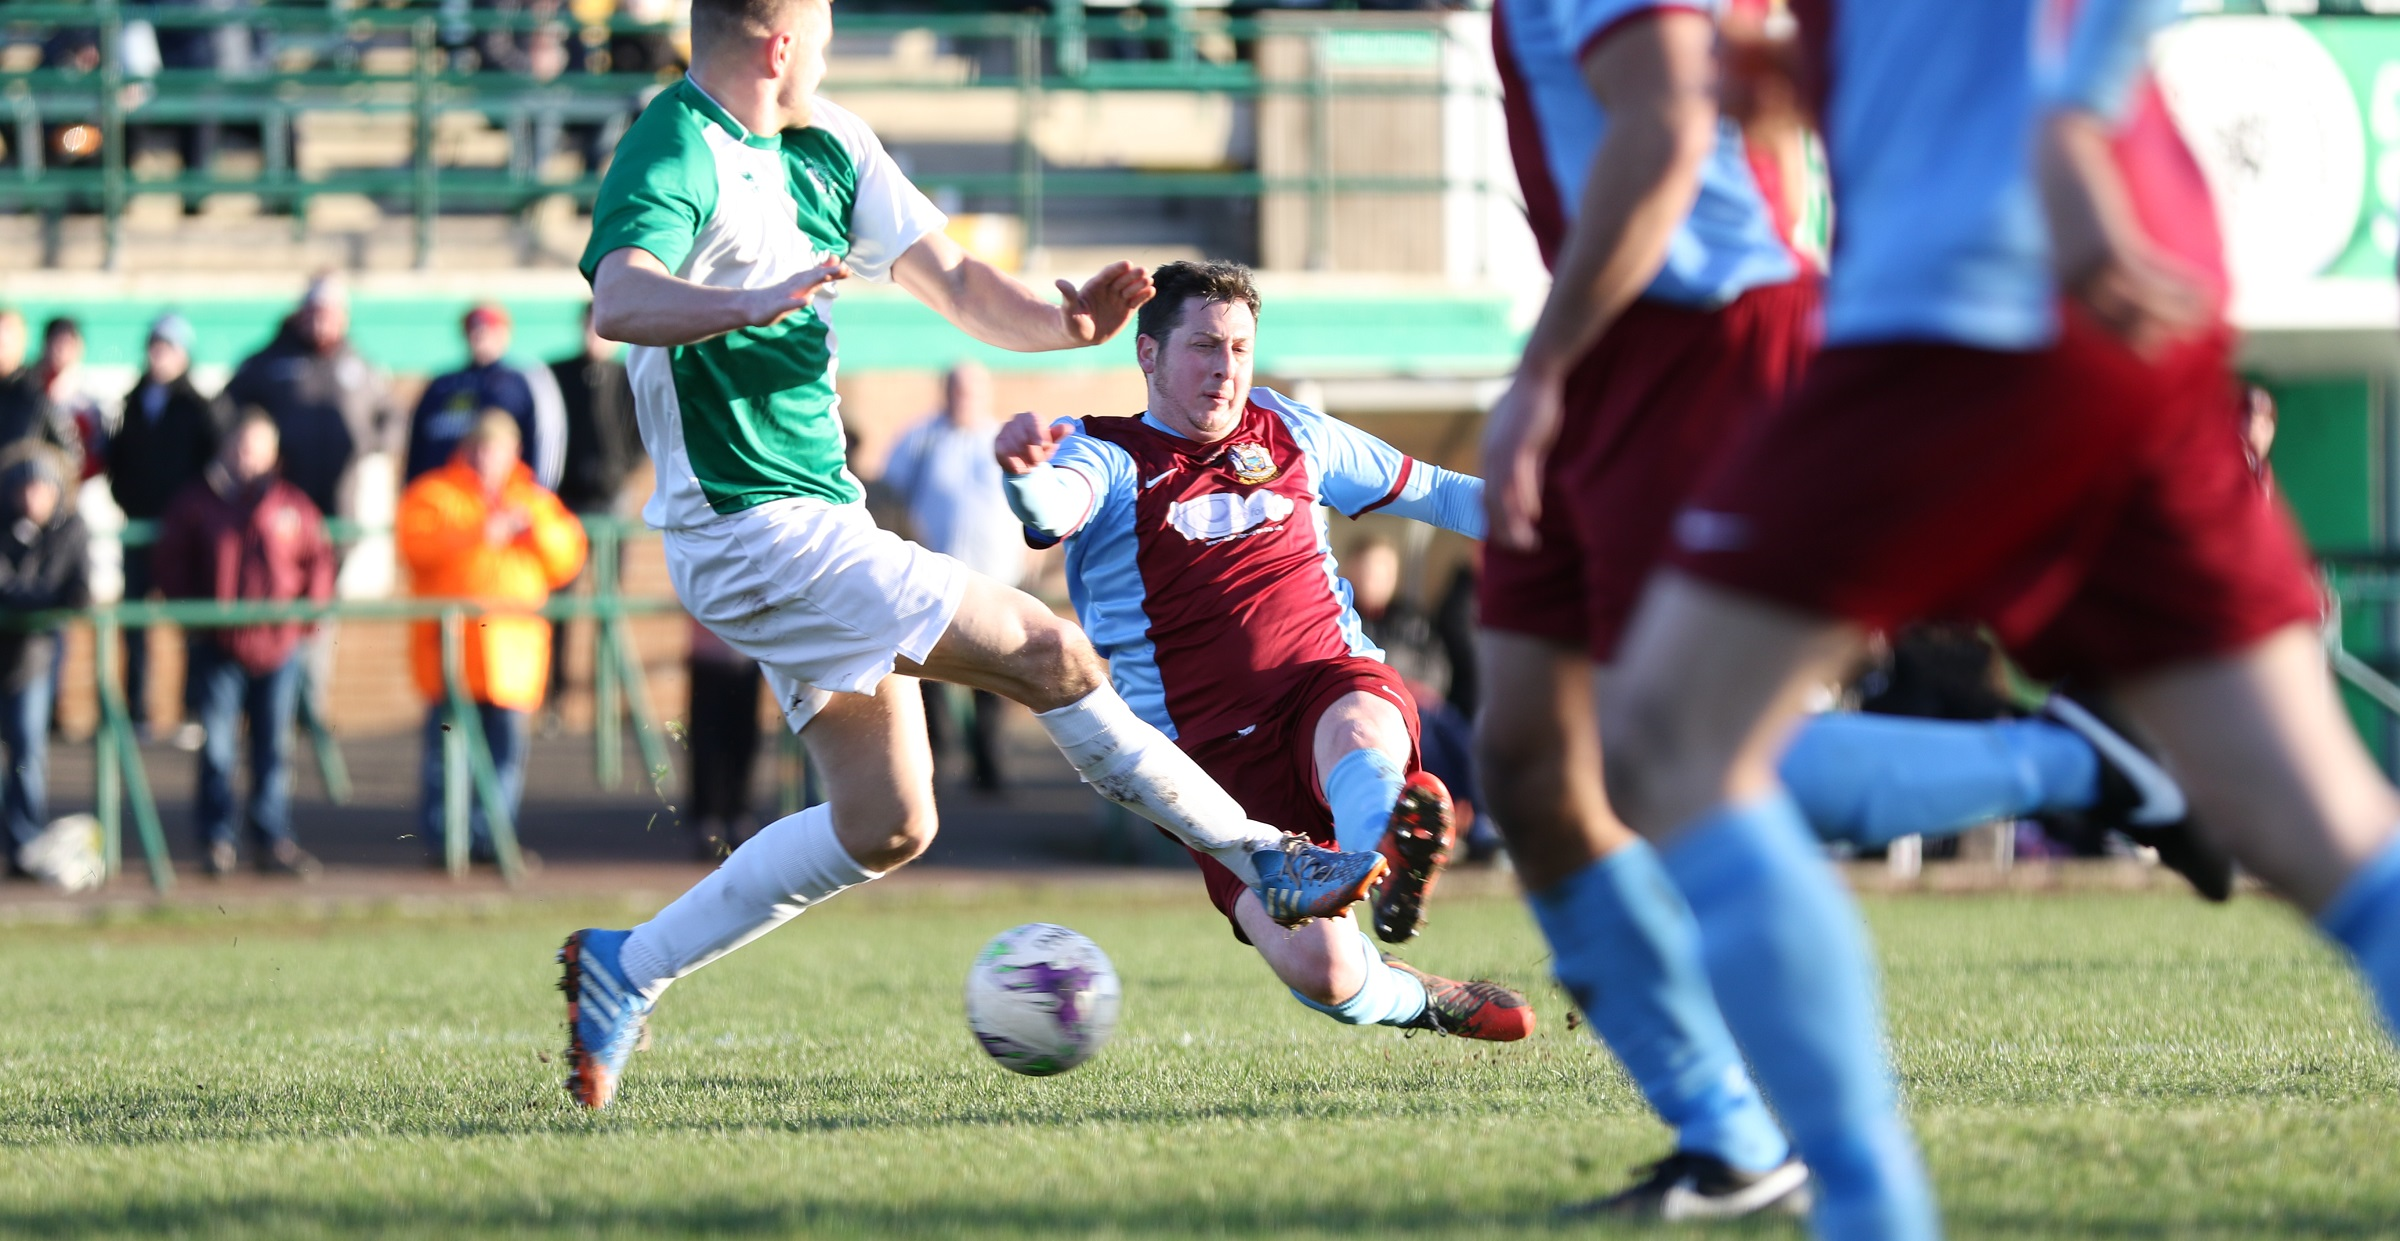 HIGHLIGHTS: Billingham Synthonia 1-0 South Shields